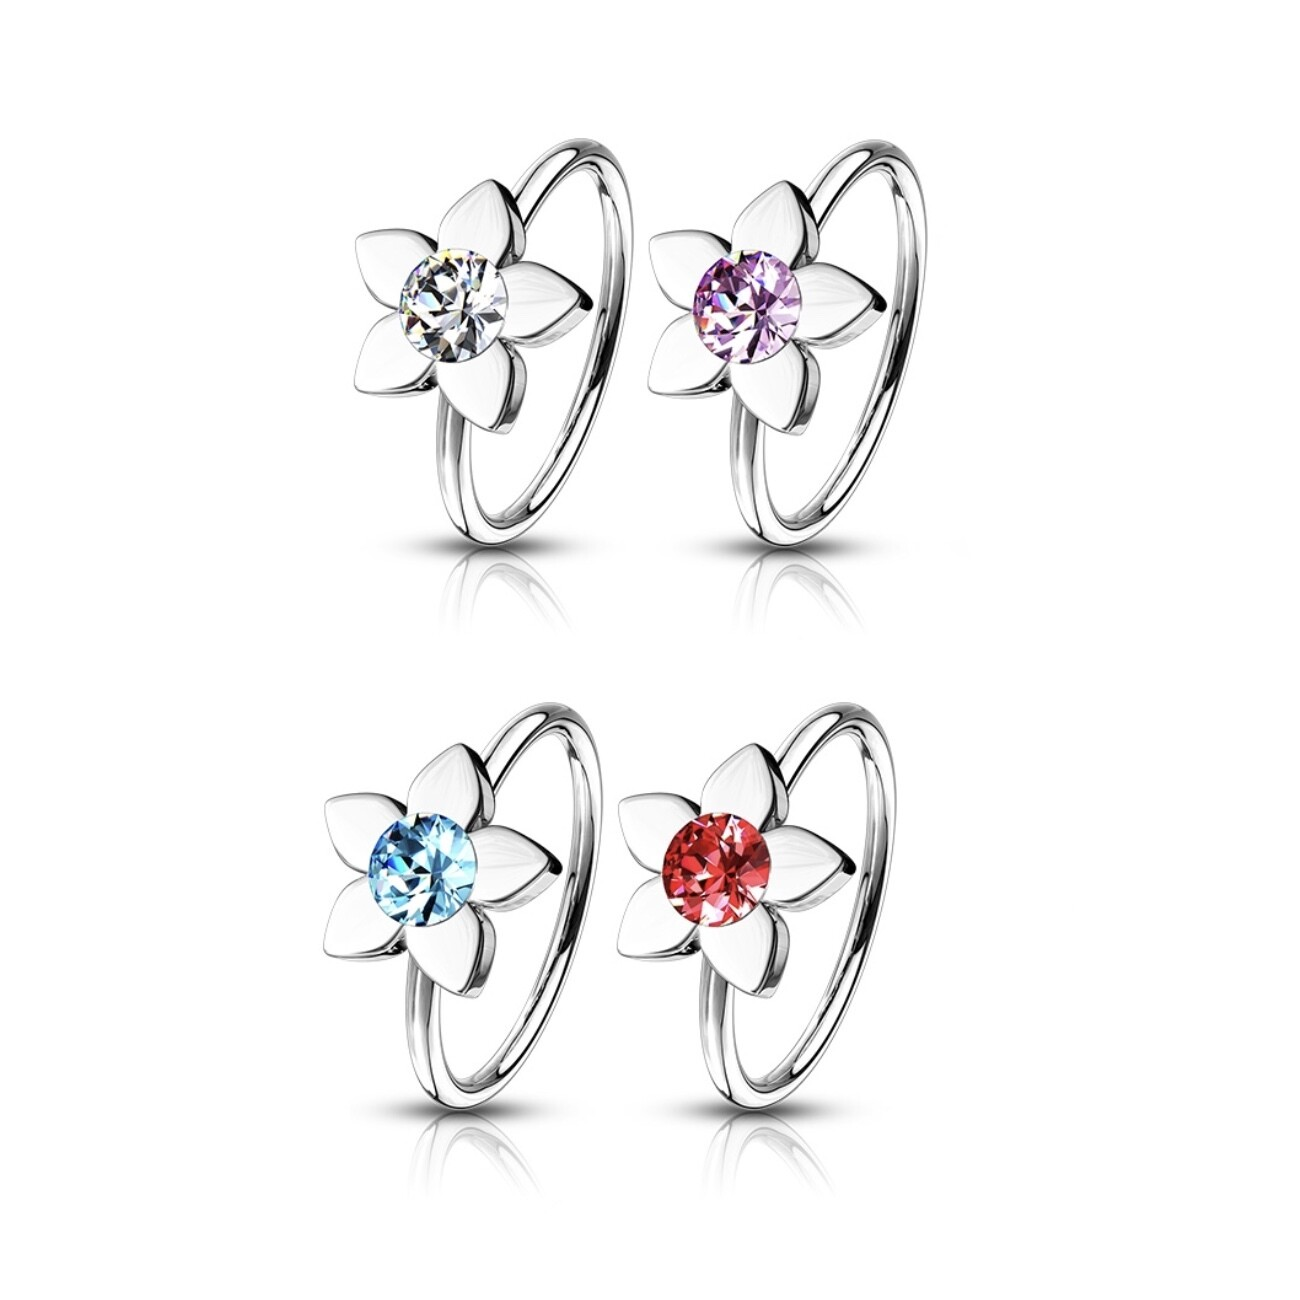 4PK GEM FLOWER LOOPS 20G 5/16""